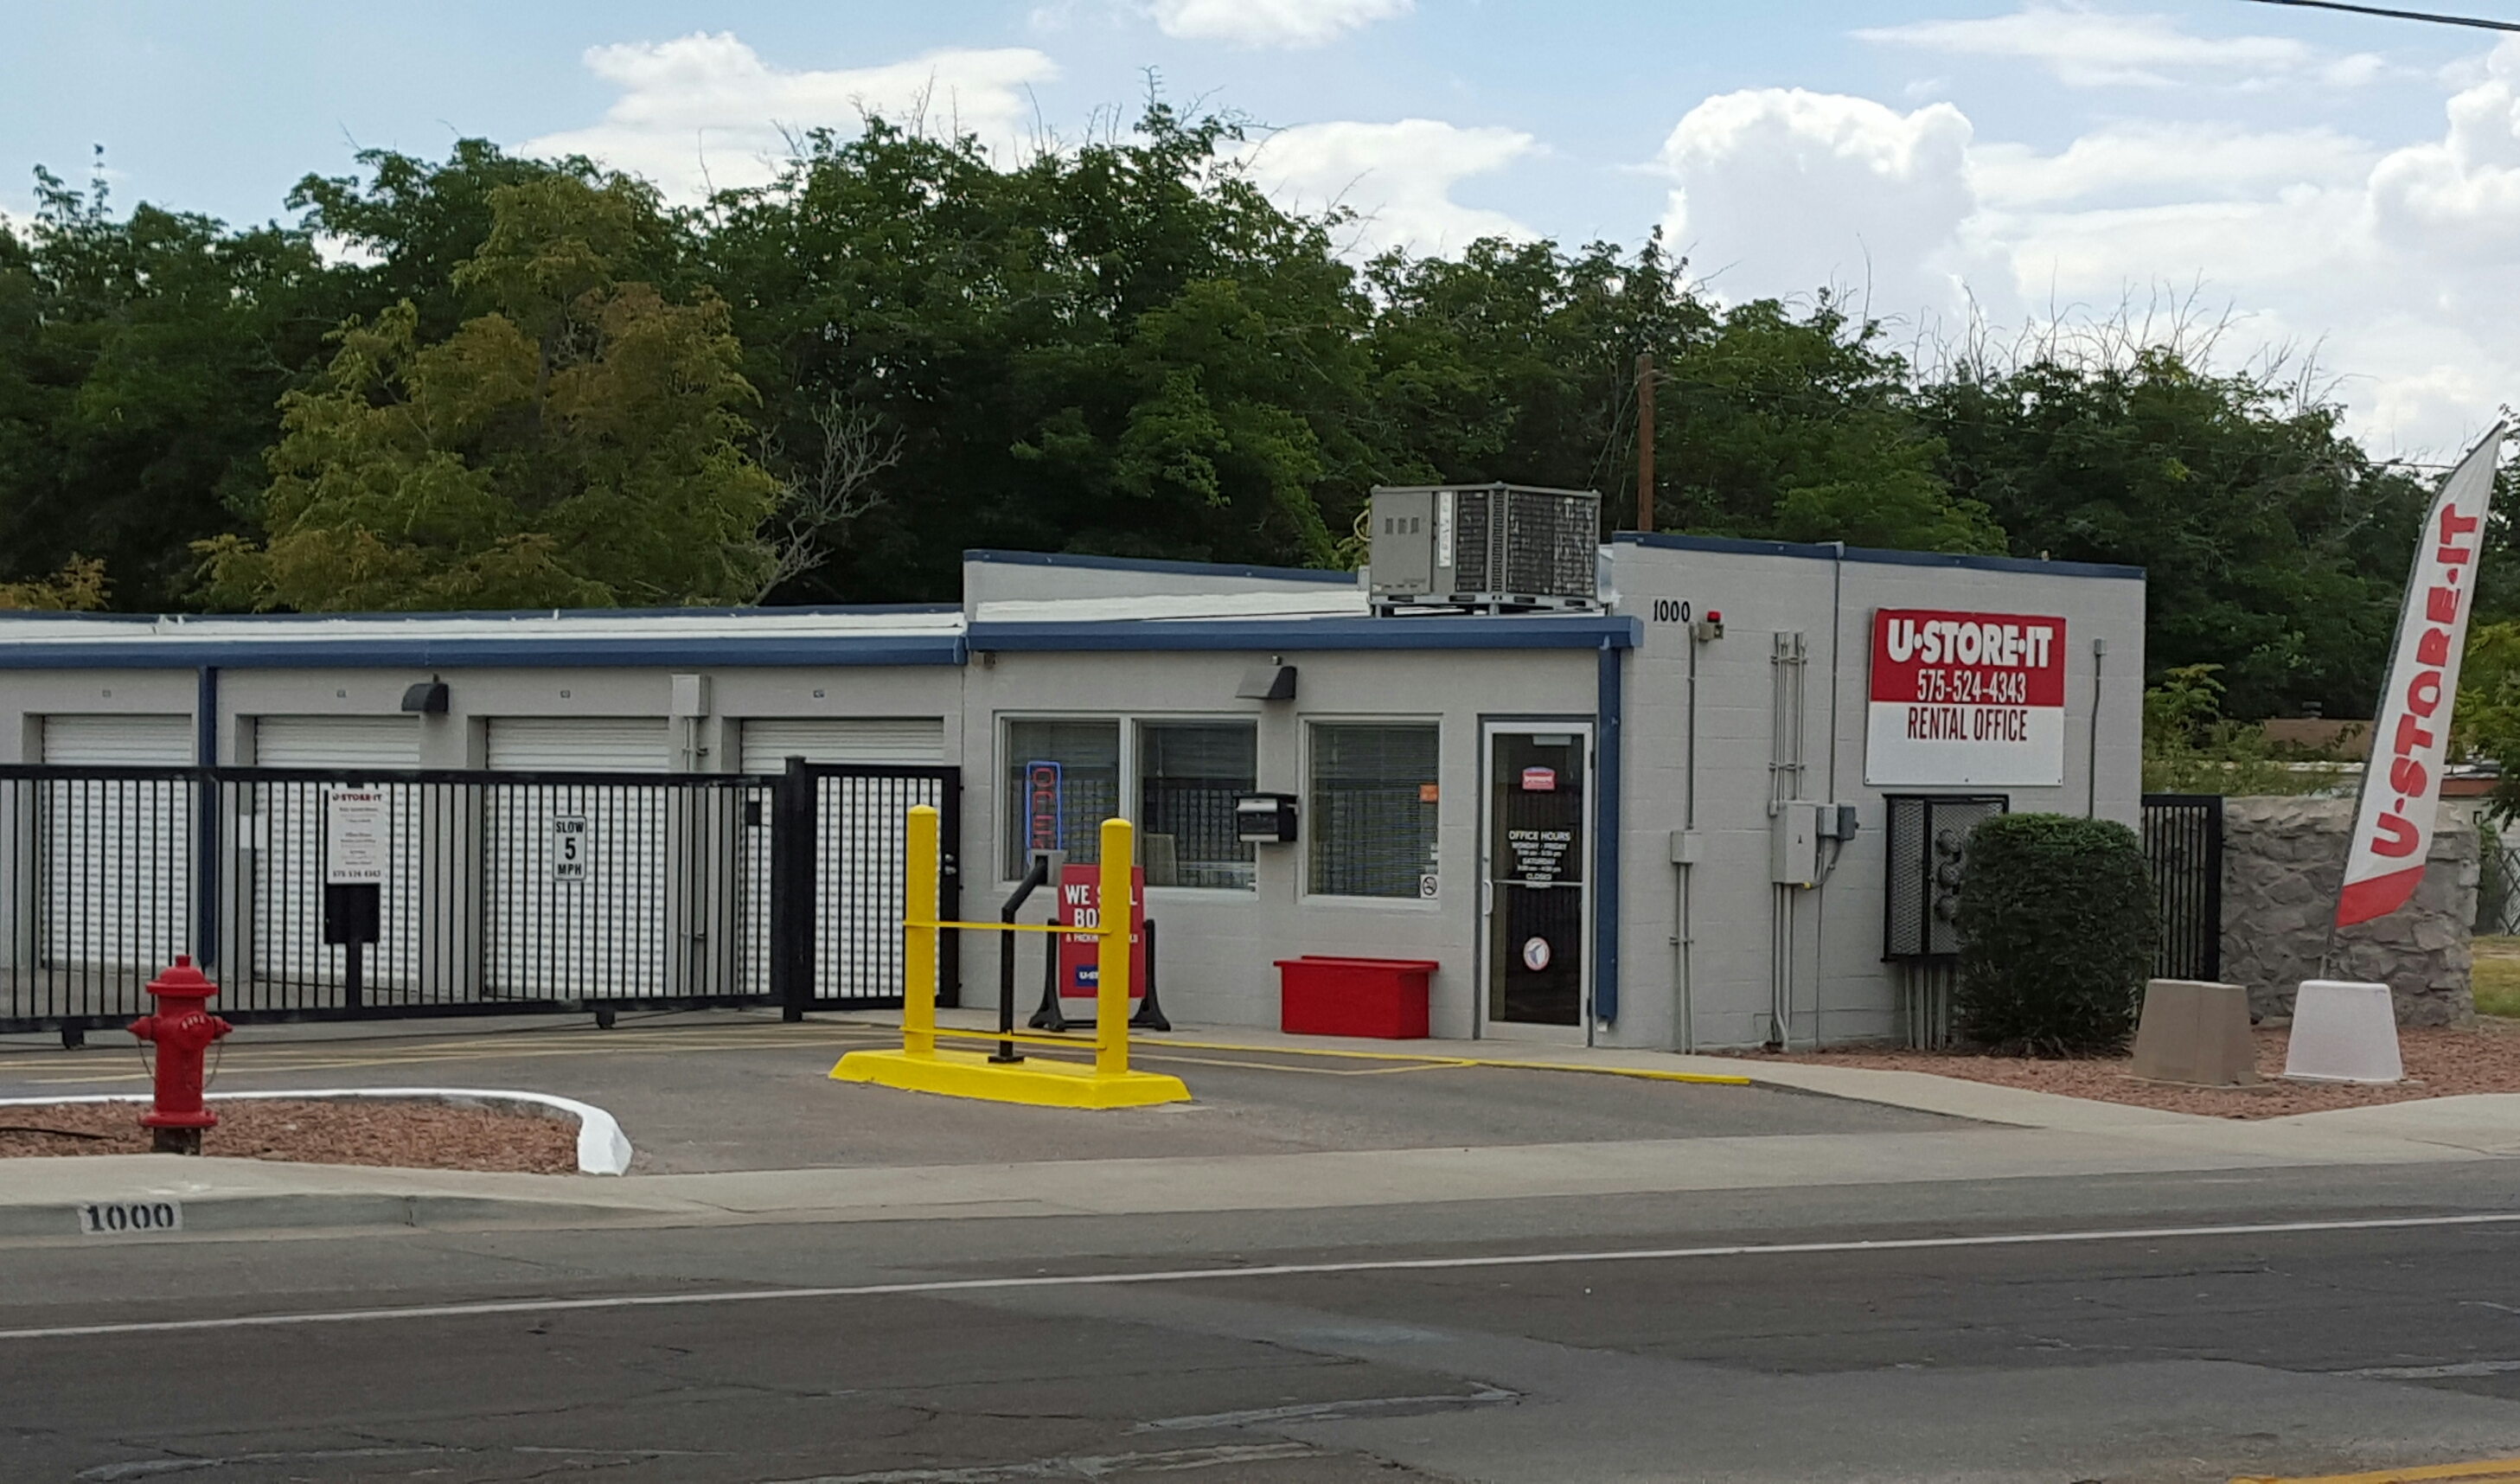 U-Store-It Facility in Las Cruces, NM